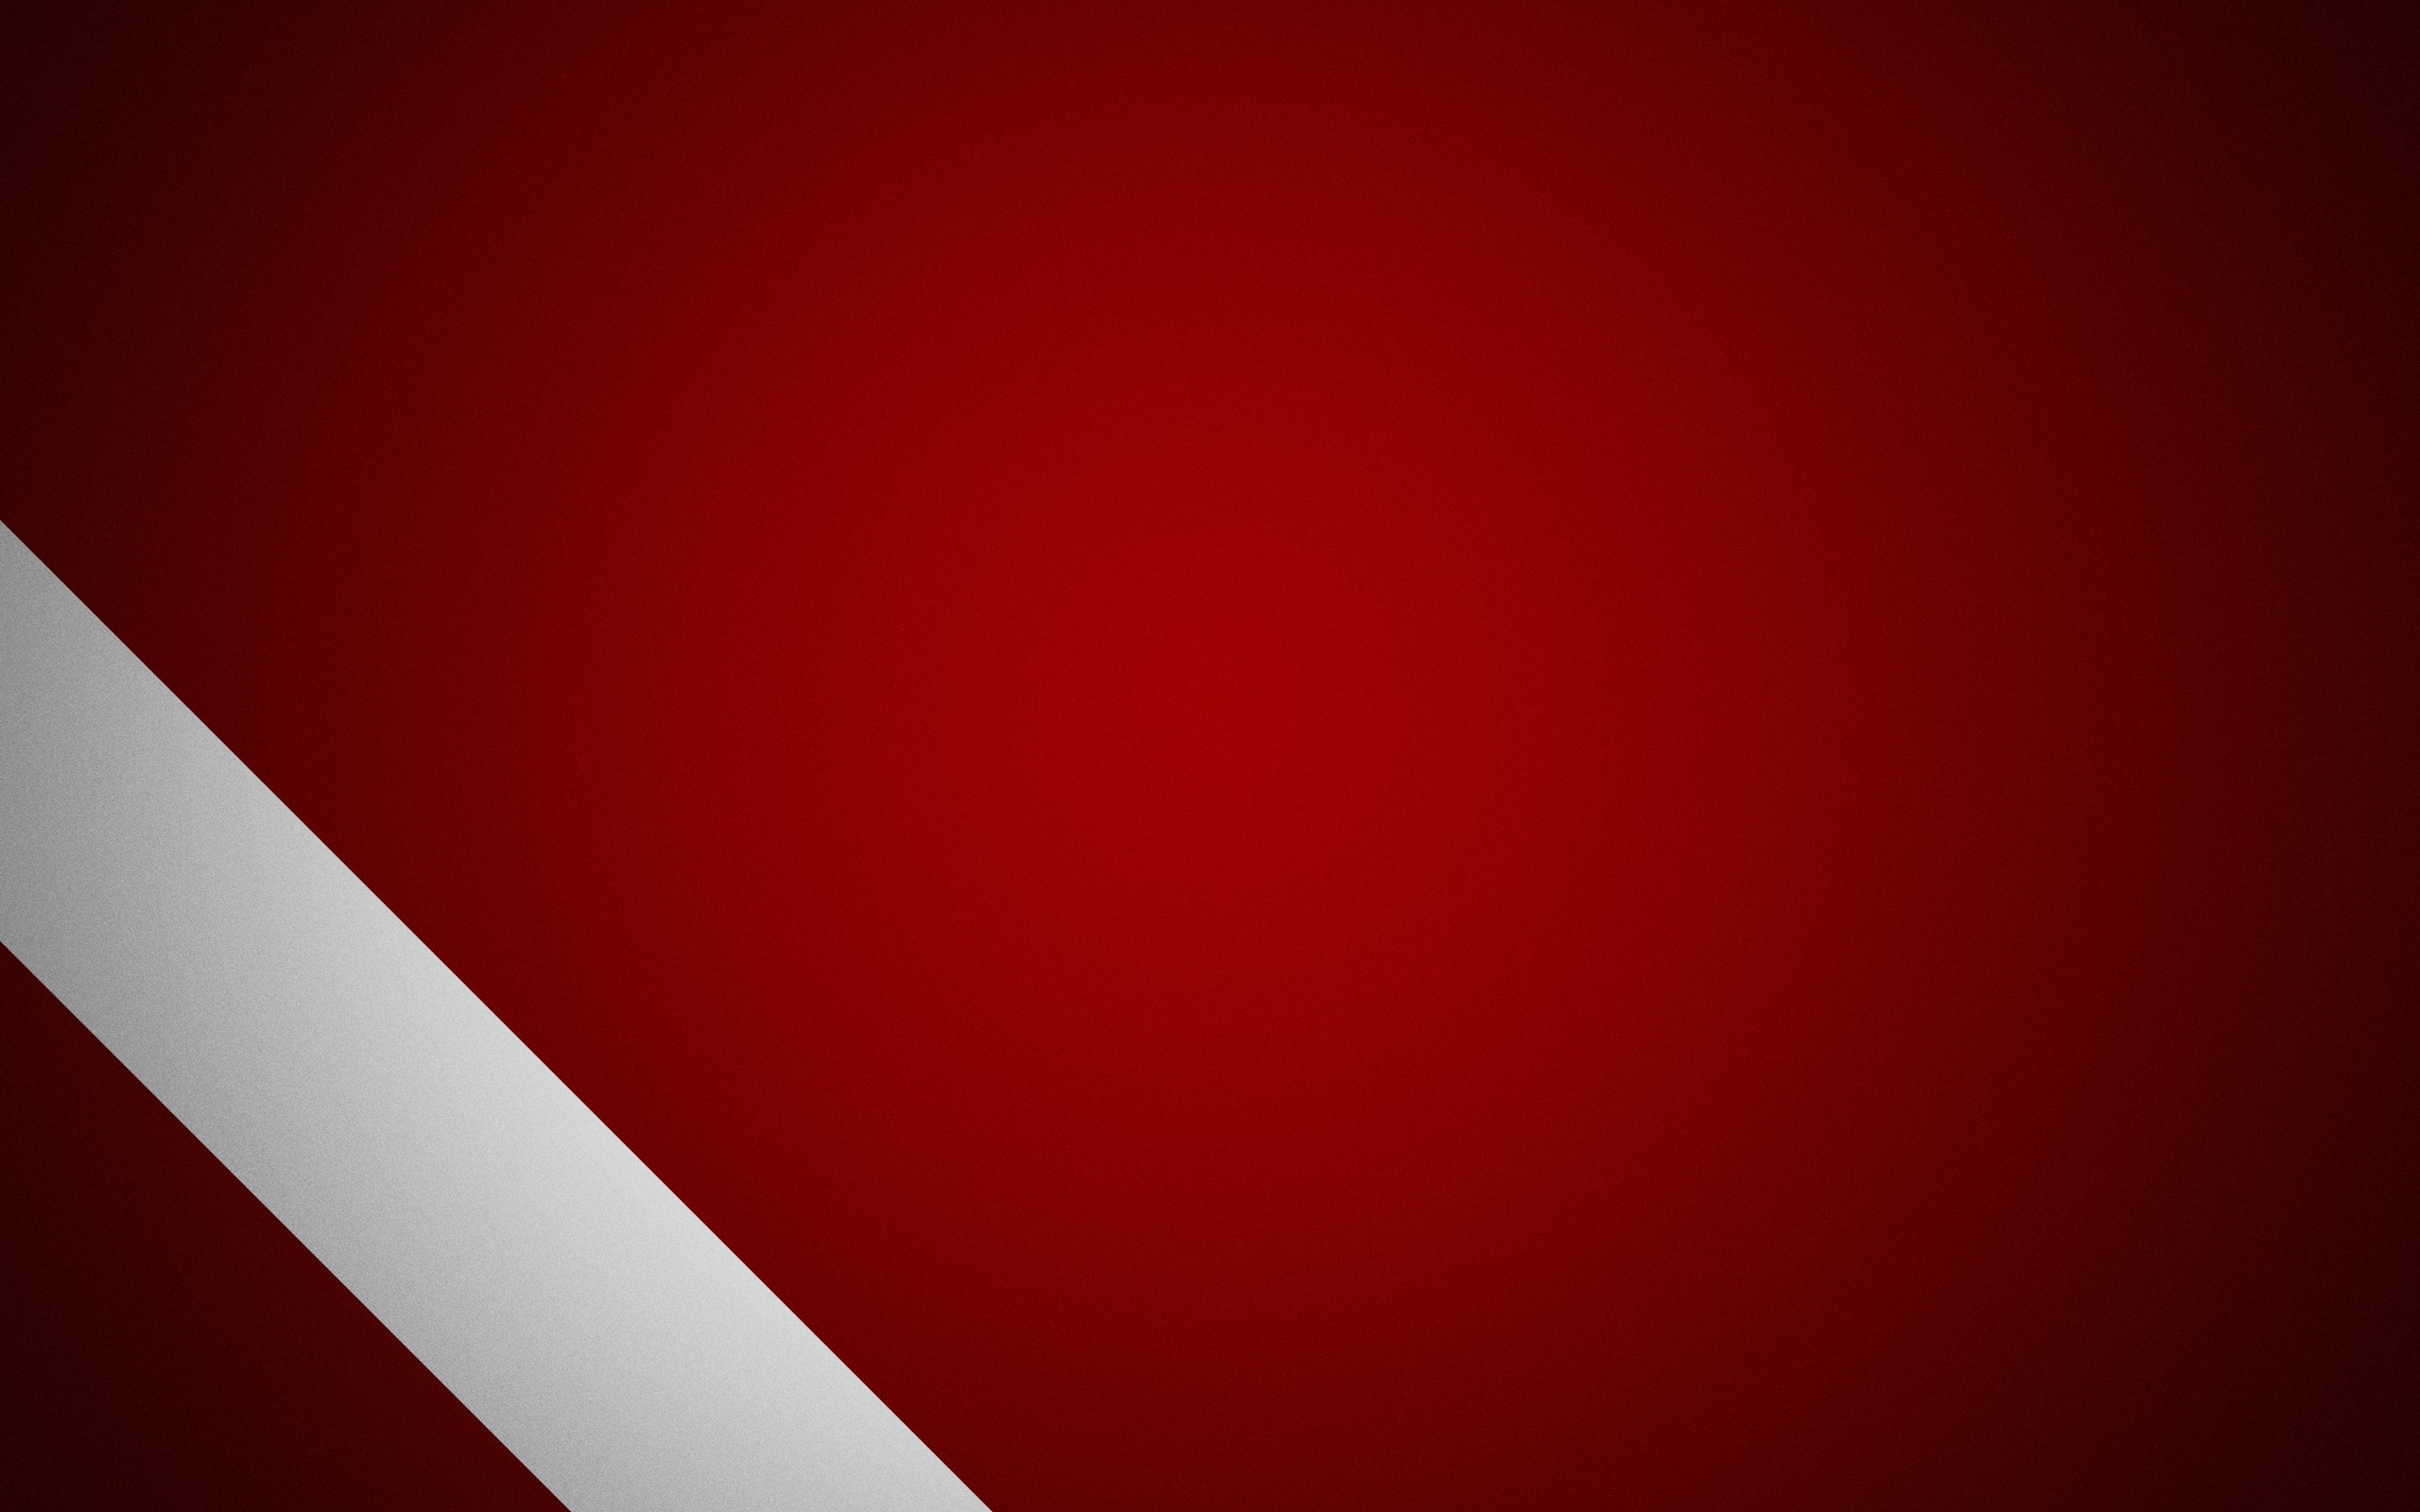 40 Crisp Red Wallpapers For Desktop Laptop And Tablet Devices